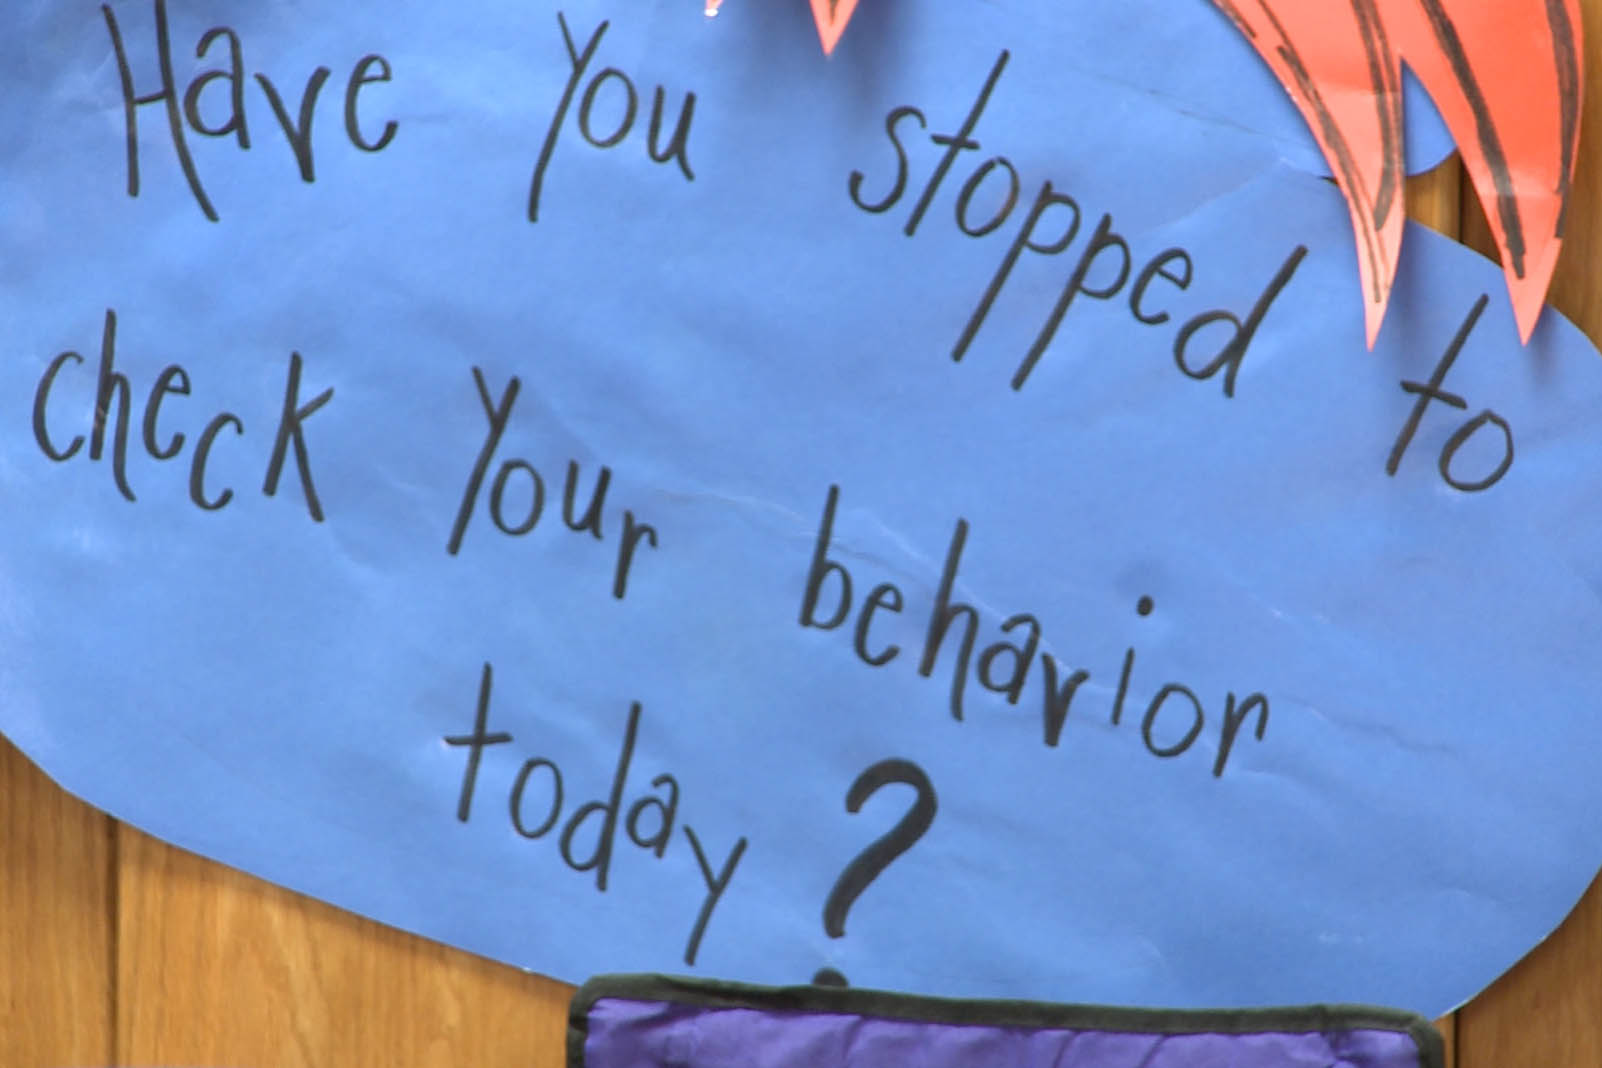 A behavior sign in a classroom at Templeton Elementary School.